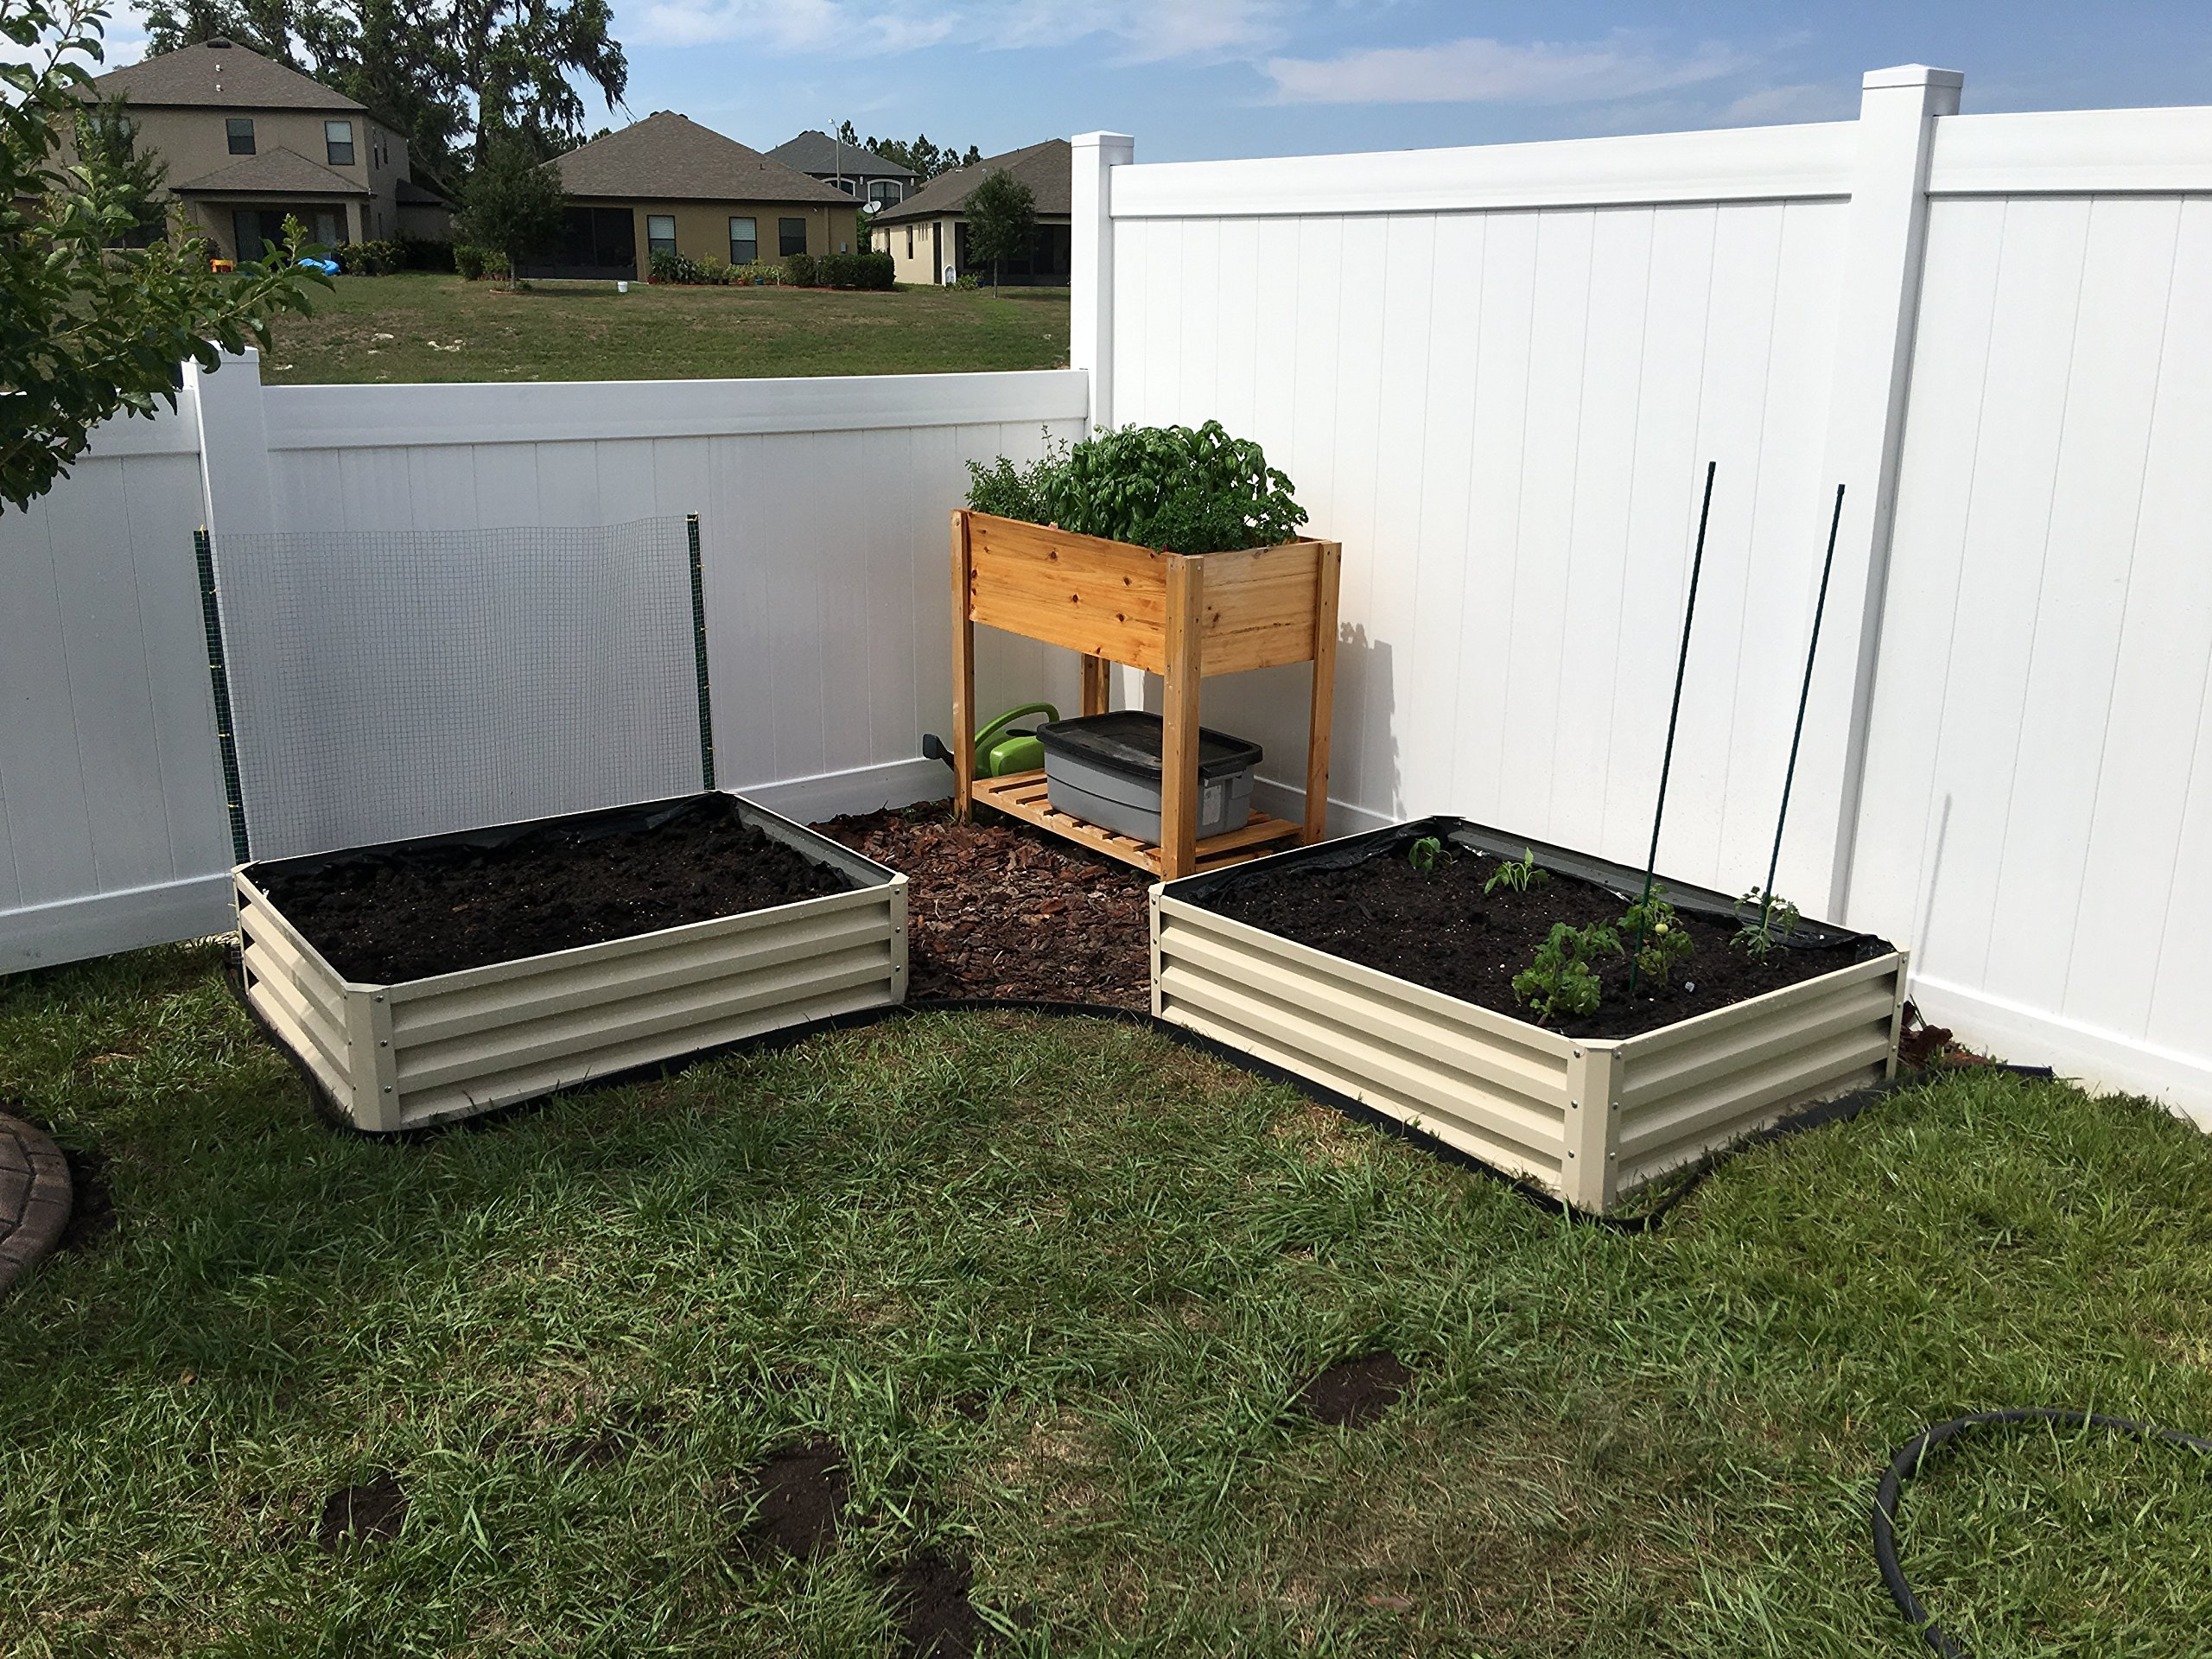 Metal Raised Garden Bed Kit - Elevated Planter Box For Growing Herbs, Vegetables, Flowers, and Succulents (1) 9 Beige Metal Raised Garden Bed Kit